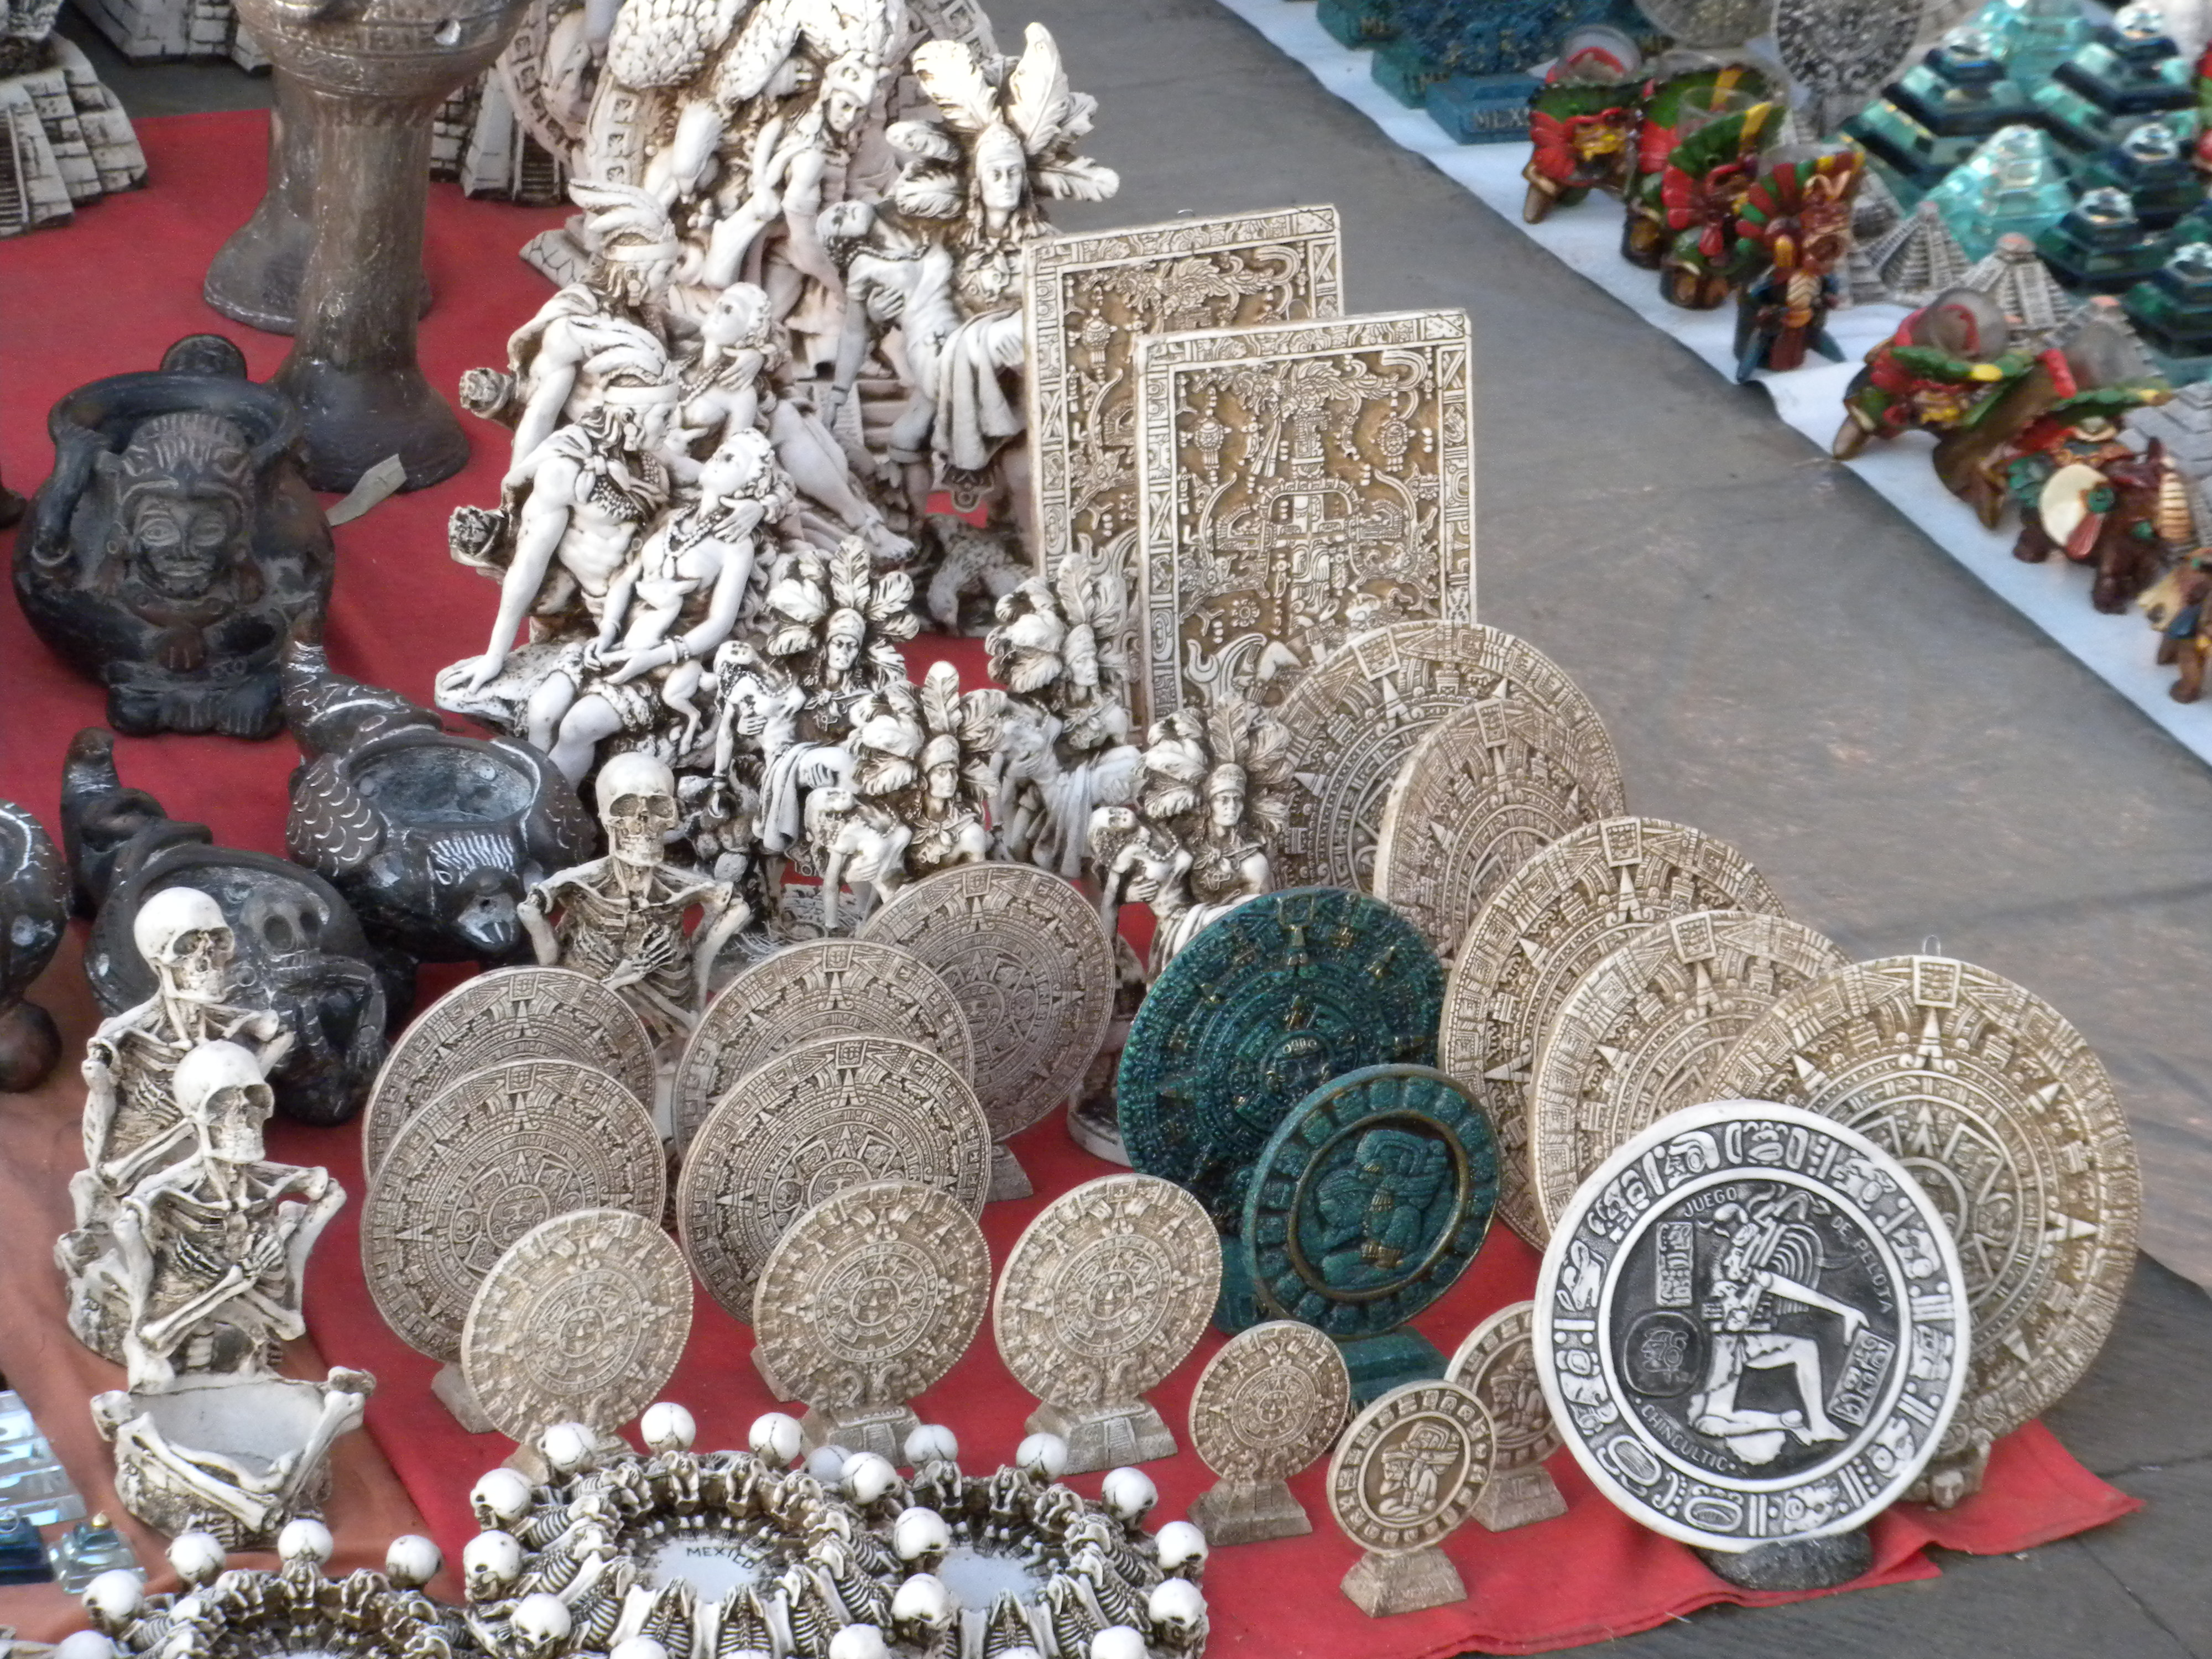 FIGURE 2. Calendar Stone souvenirs for sale in Mexico City, October 2010. Photo courtesy of Barbara Mundy and Sara Ryu.